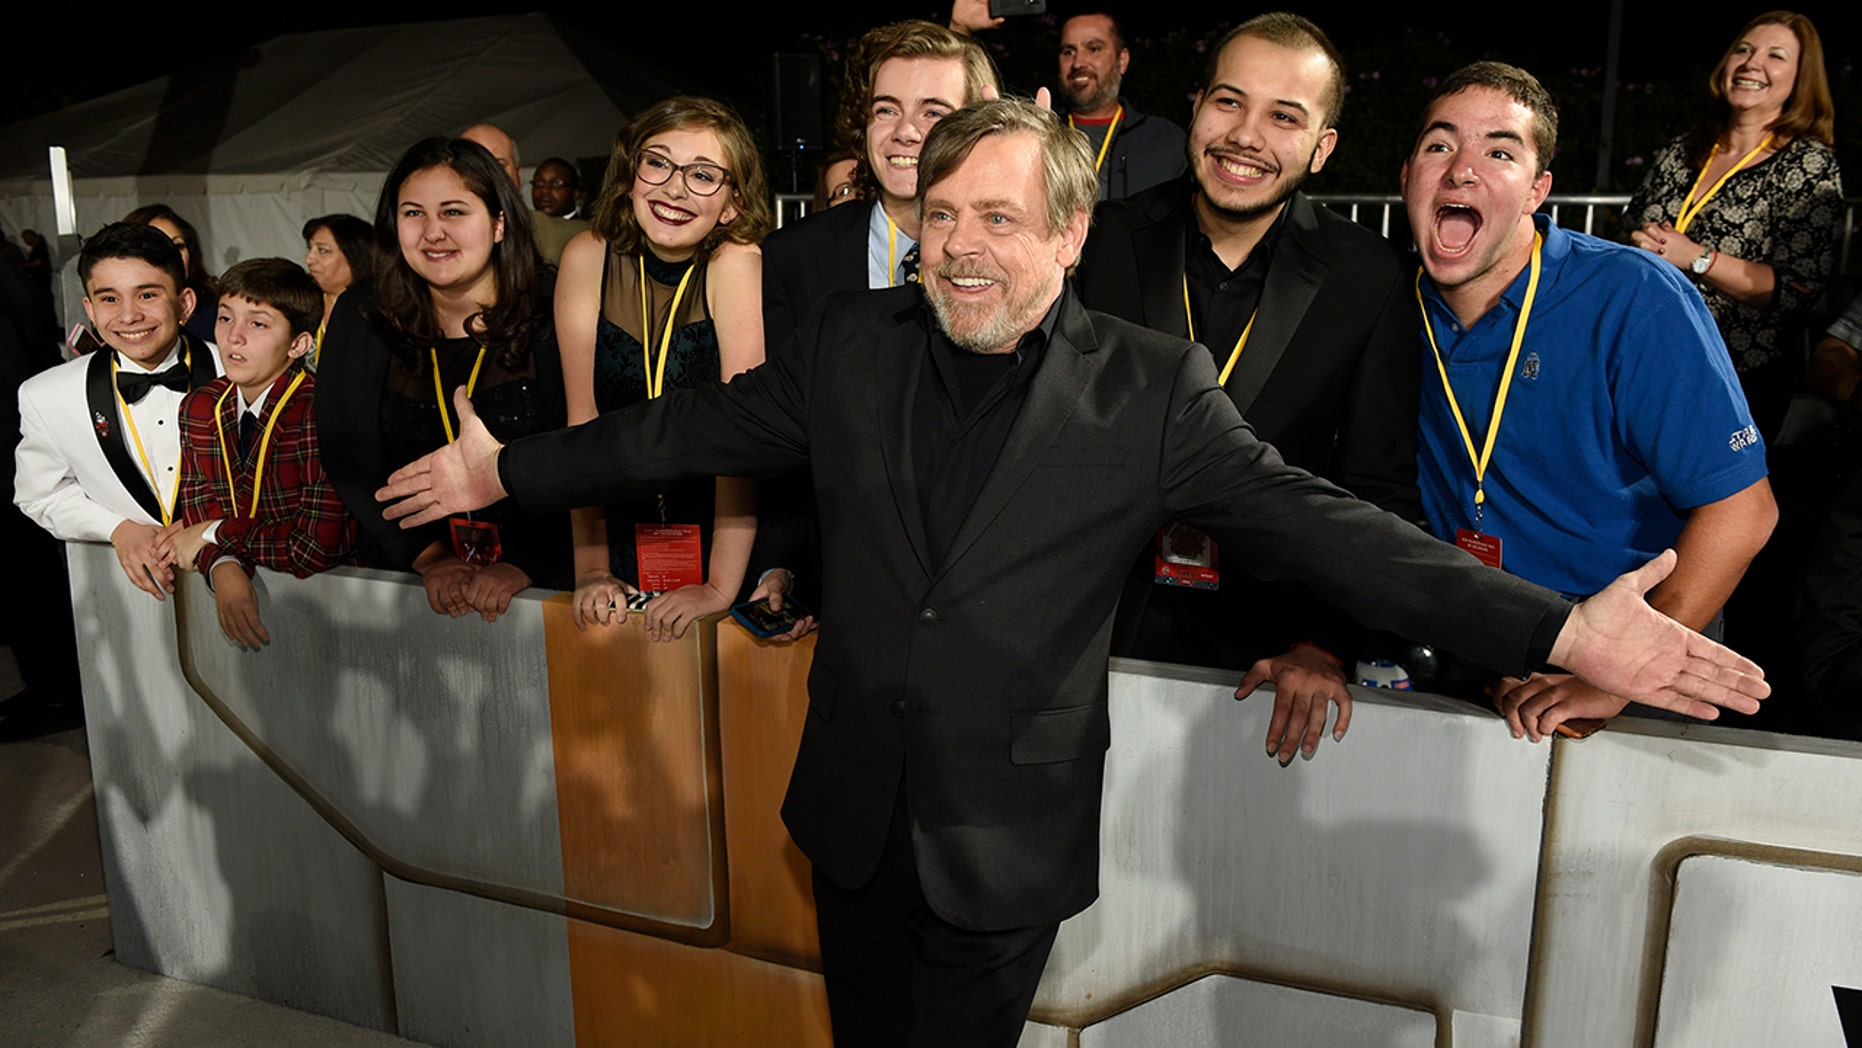 """""""Star Wars: The Last Jedi"""" cast member Mark Hamill poses with special guests at the premiere as part of the Make-A-Wish Foundation."""